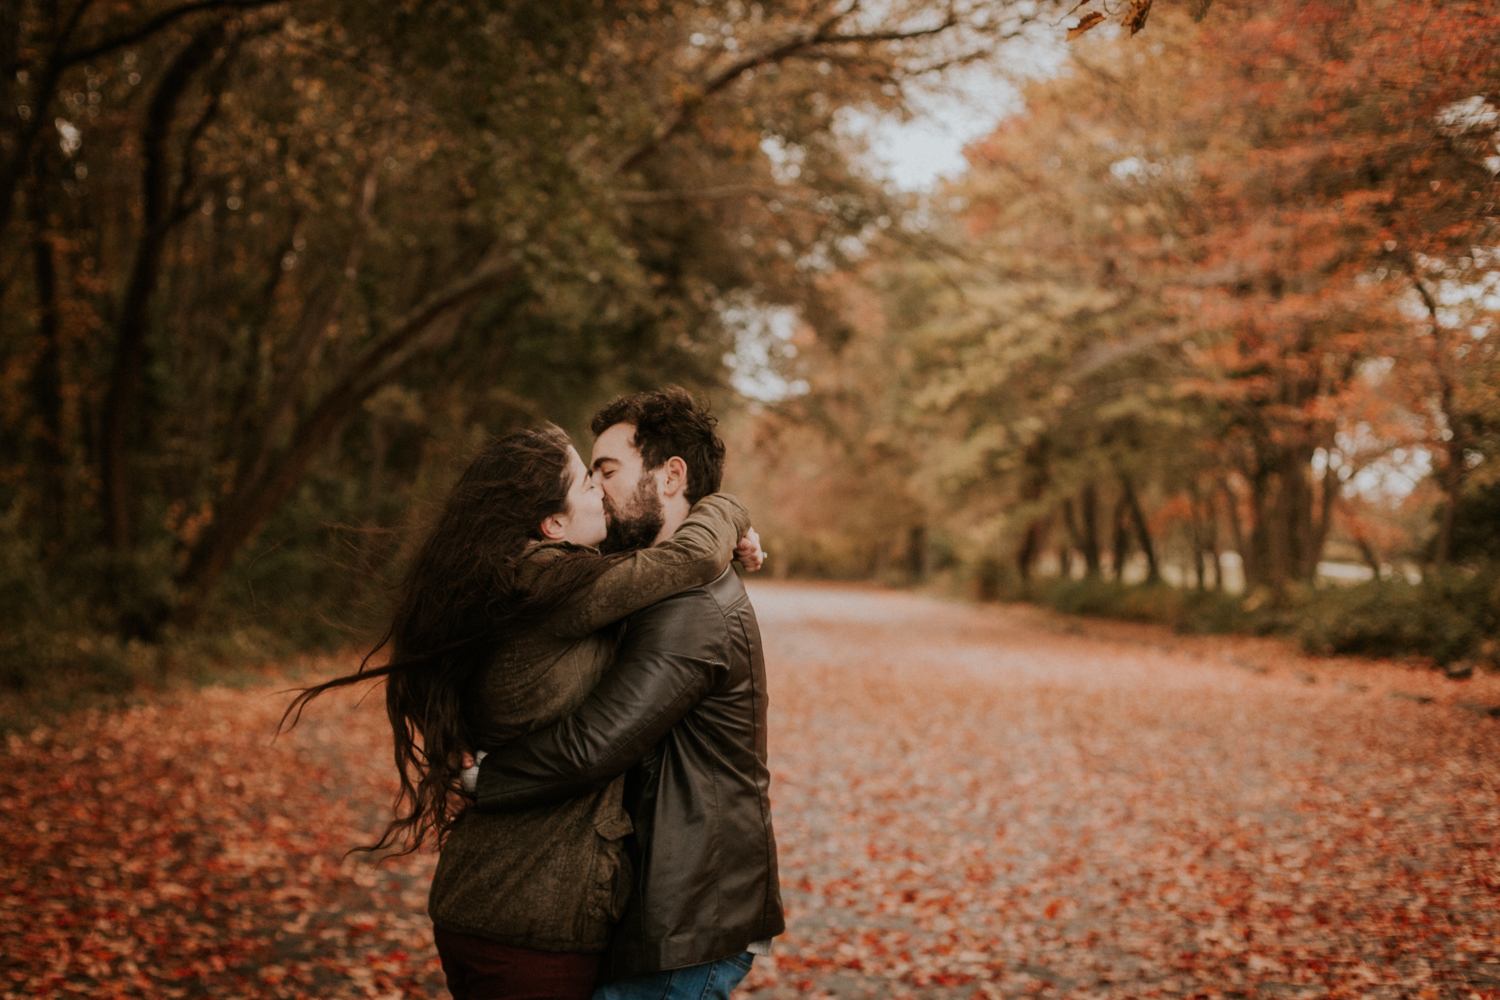 fall_colt_state_park_leaves_foliage_engagement_kiss_motion_wind_orange_leather_parka_outdoors_trees_dress_outdoors_connecticut_rhode_island_massachusetts_new_england_wedding_photography_photographer_natural_laid_back_fun_adventure_light_engagement_session.jpg